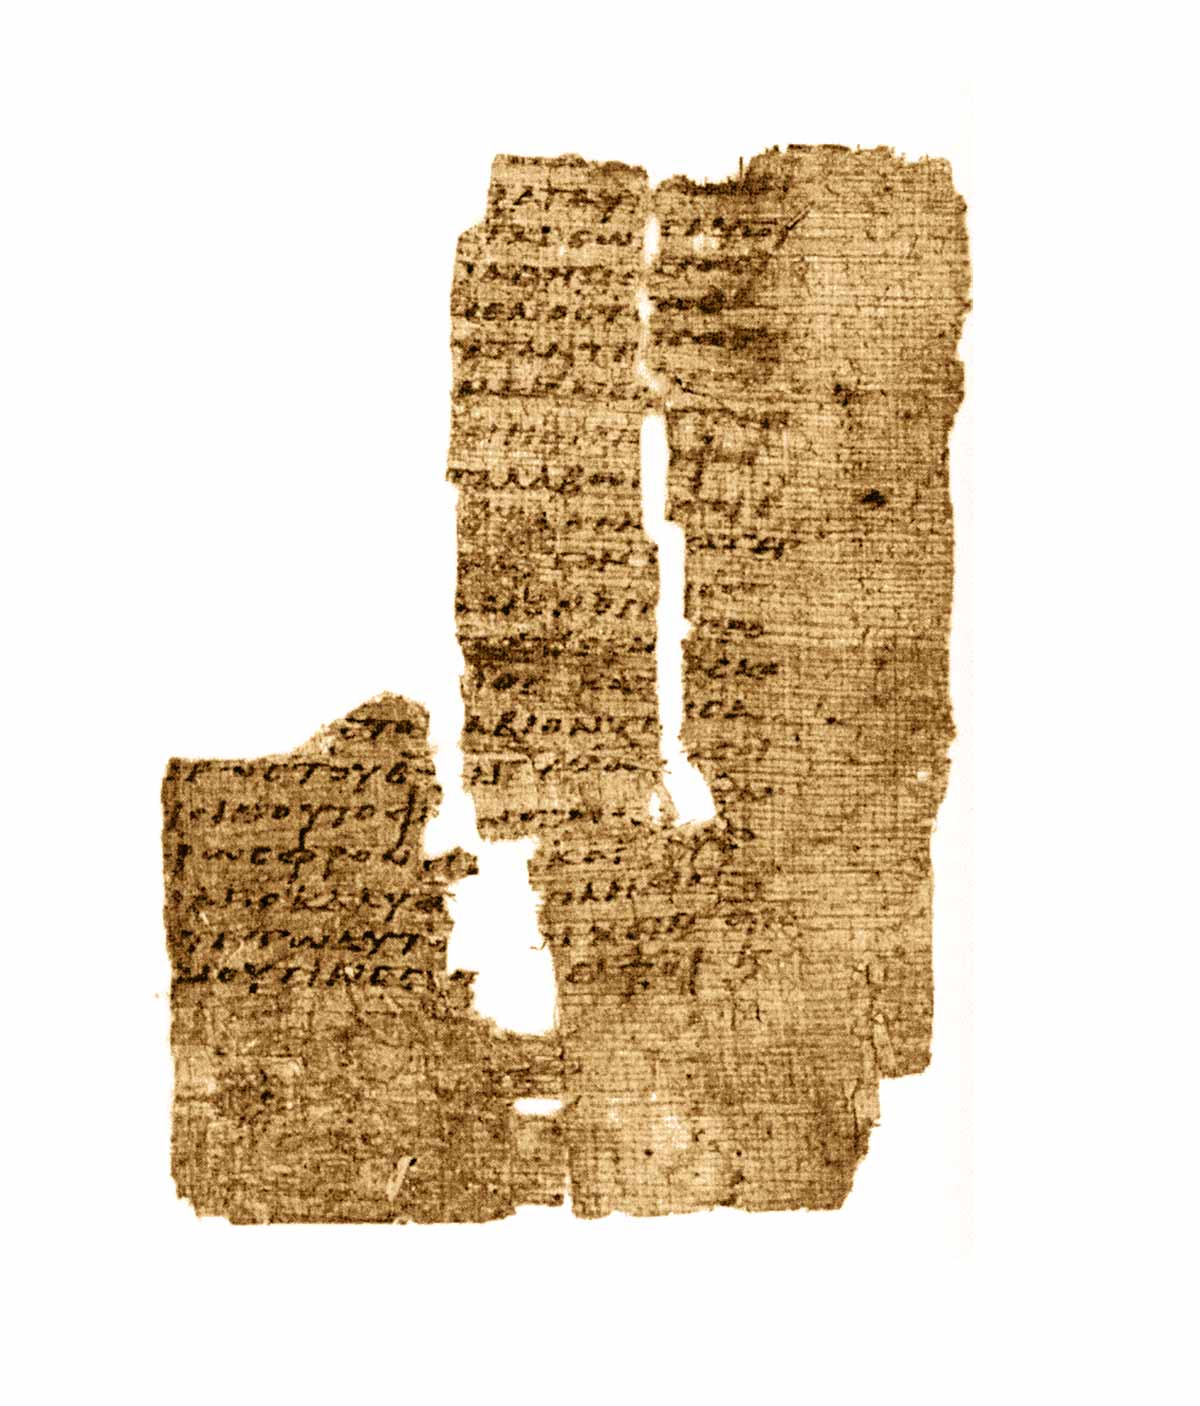 Papyrus_16_-_Papyrus_Oxyrhynchus_1009_-_Cairo_Egyptian_Museum_JE_47424_-_Epistle_to_the_Philippians_3,10–17,_4,2–8